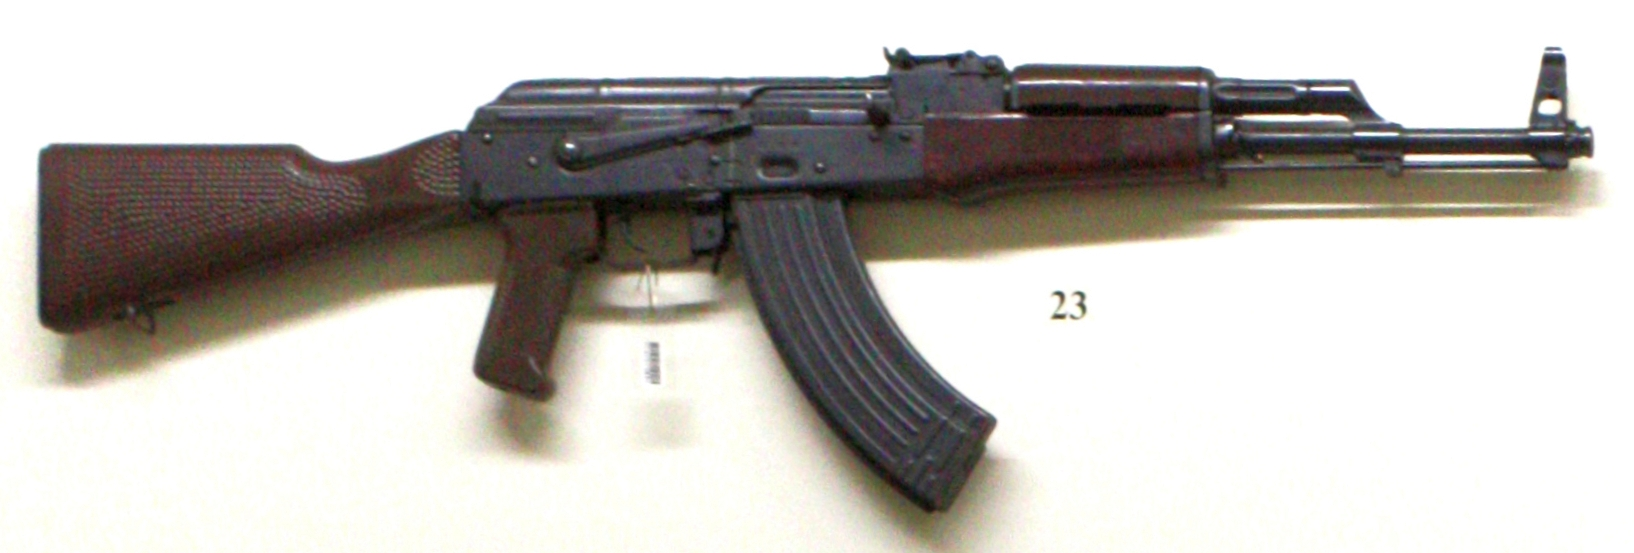 east german ak